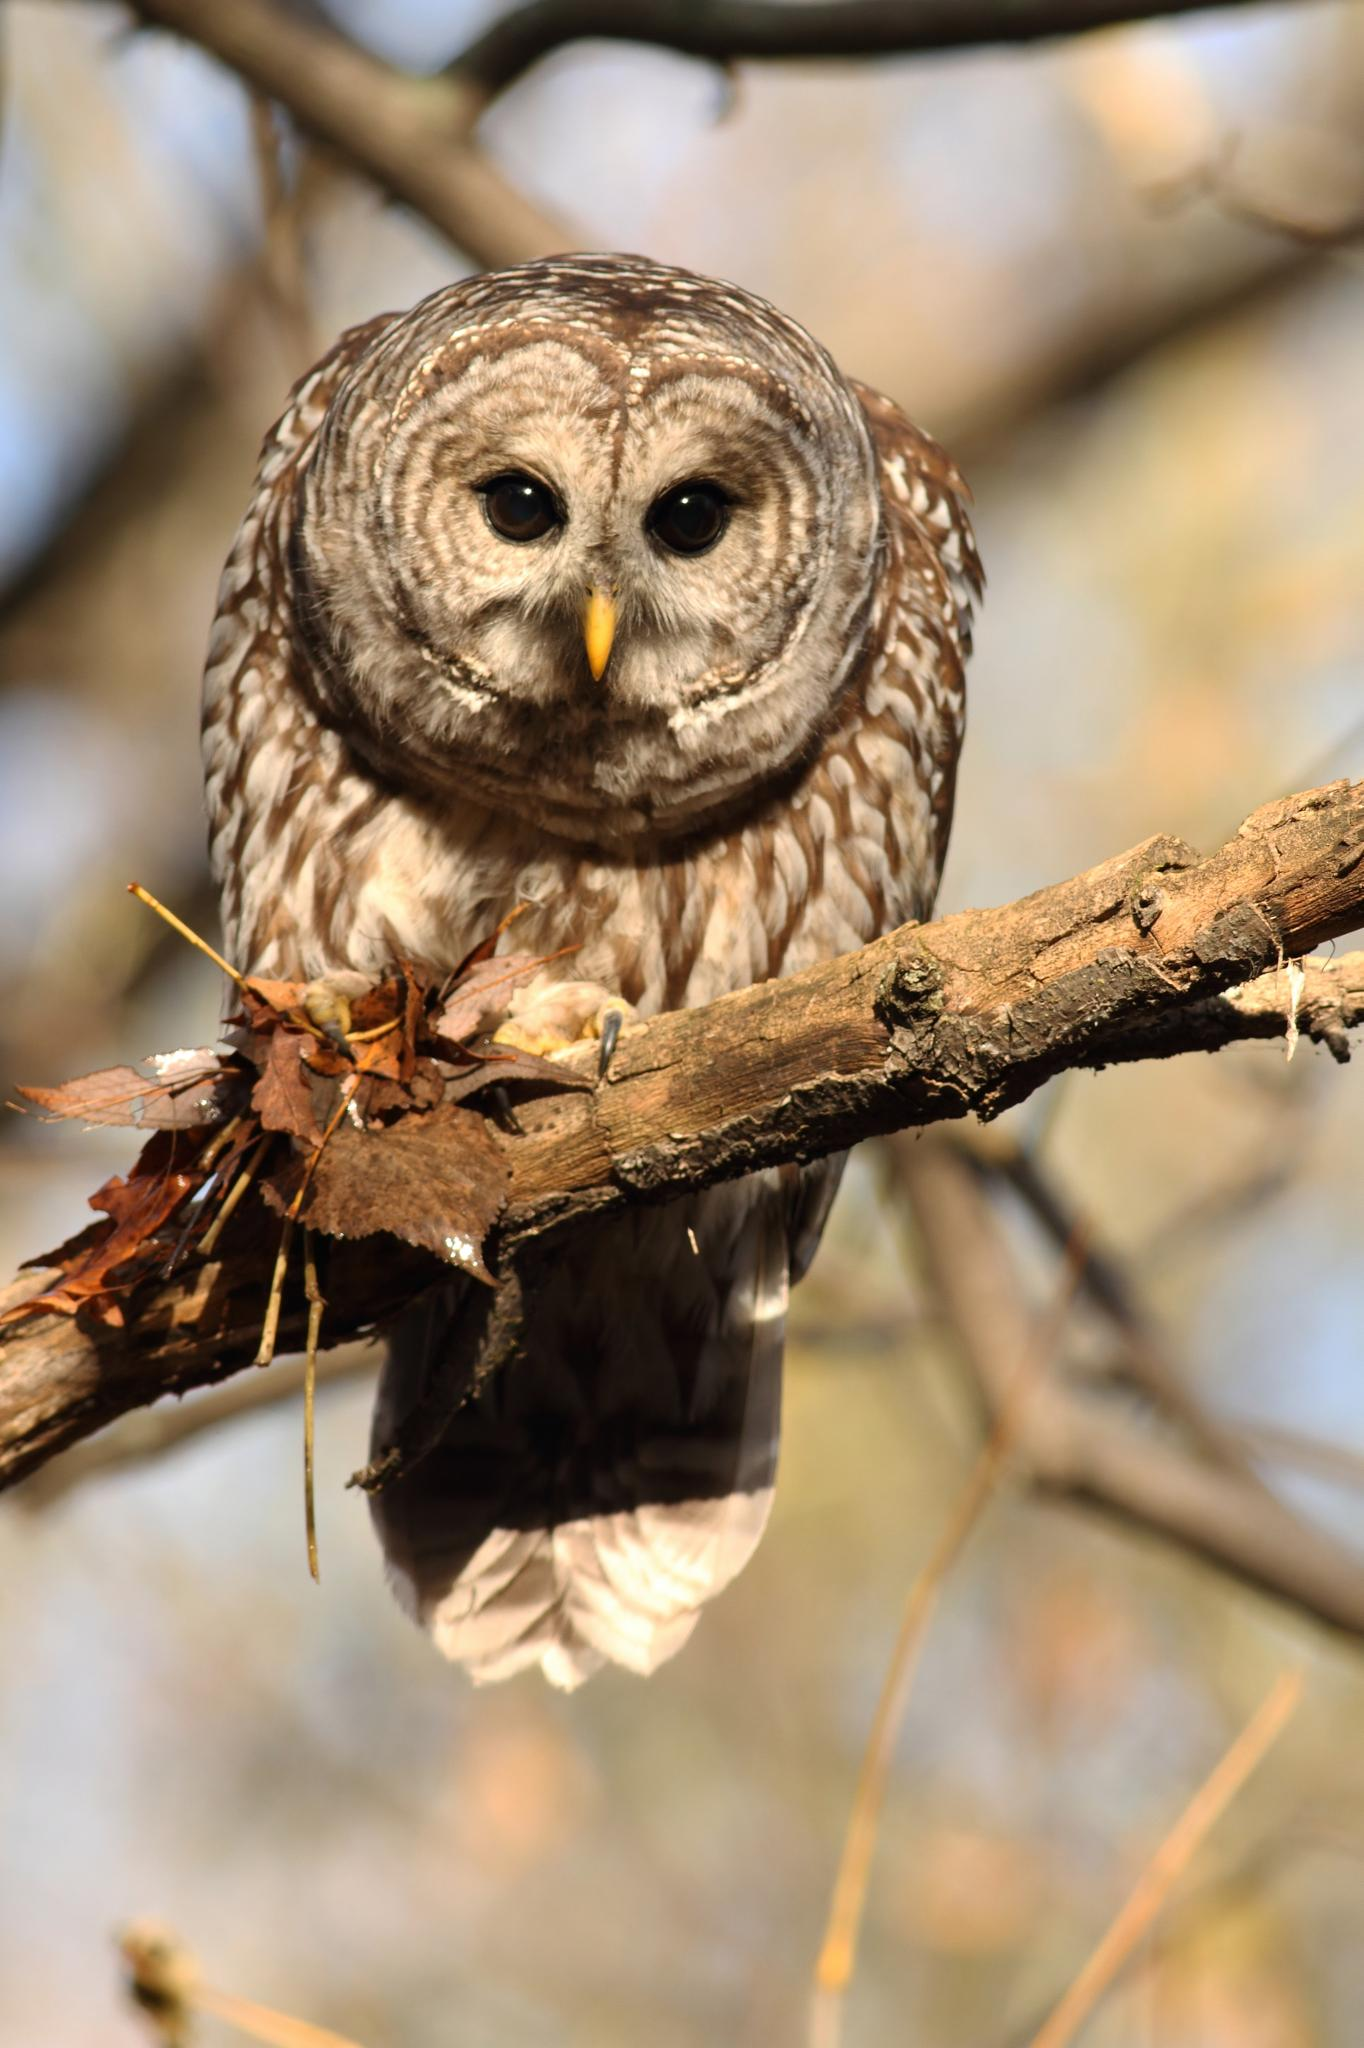 Barred Owl by pierre.larouche.790